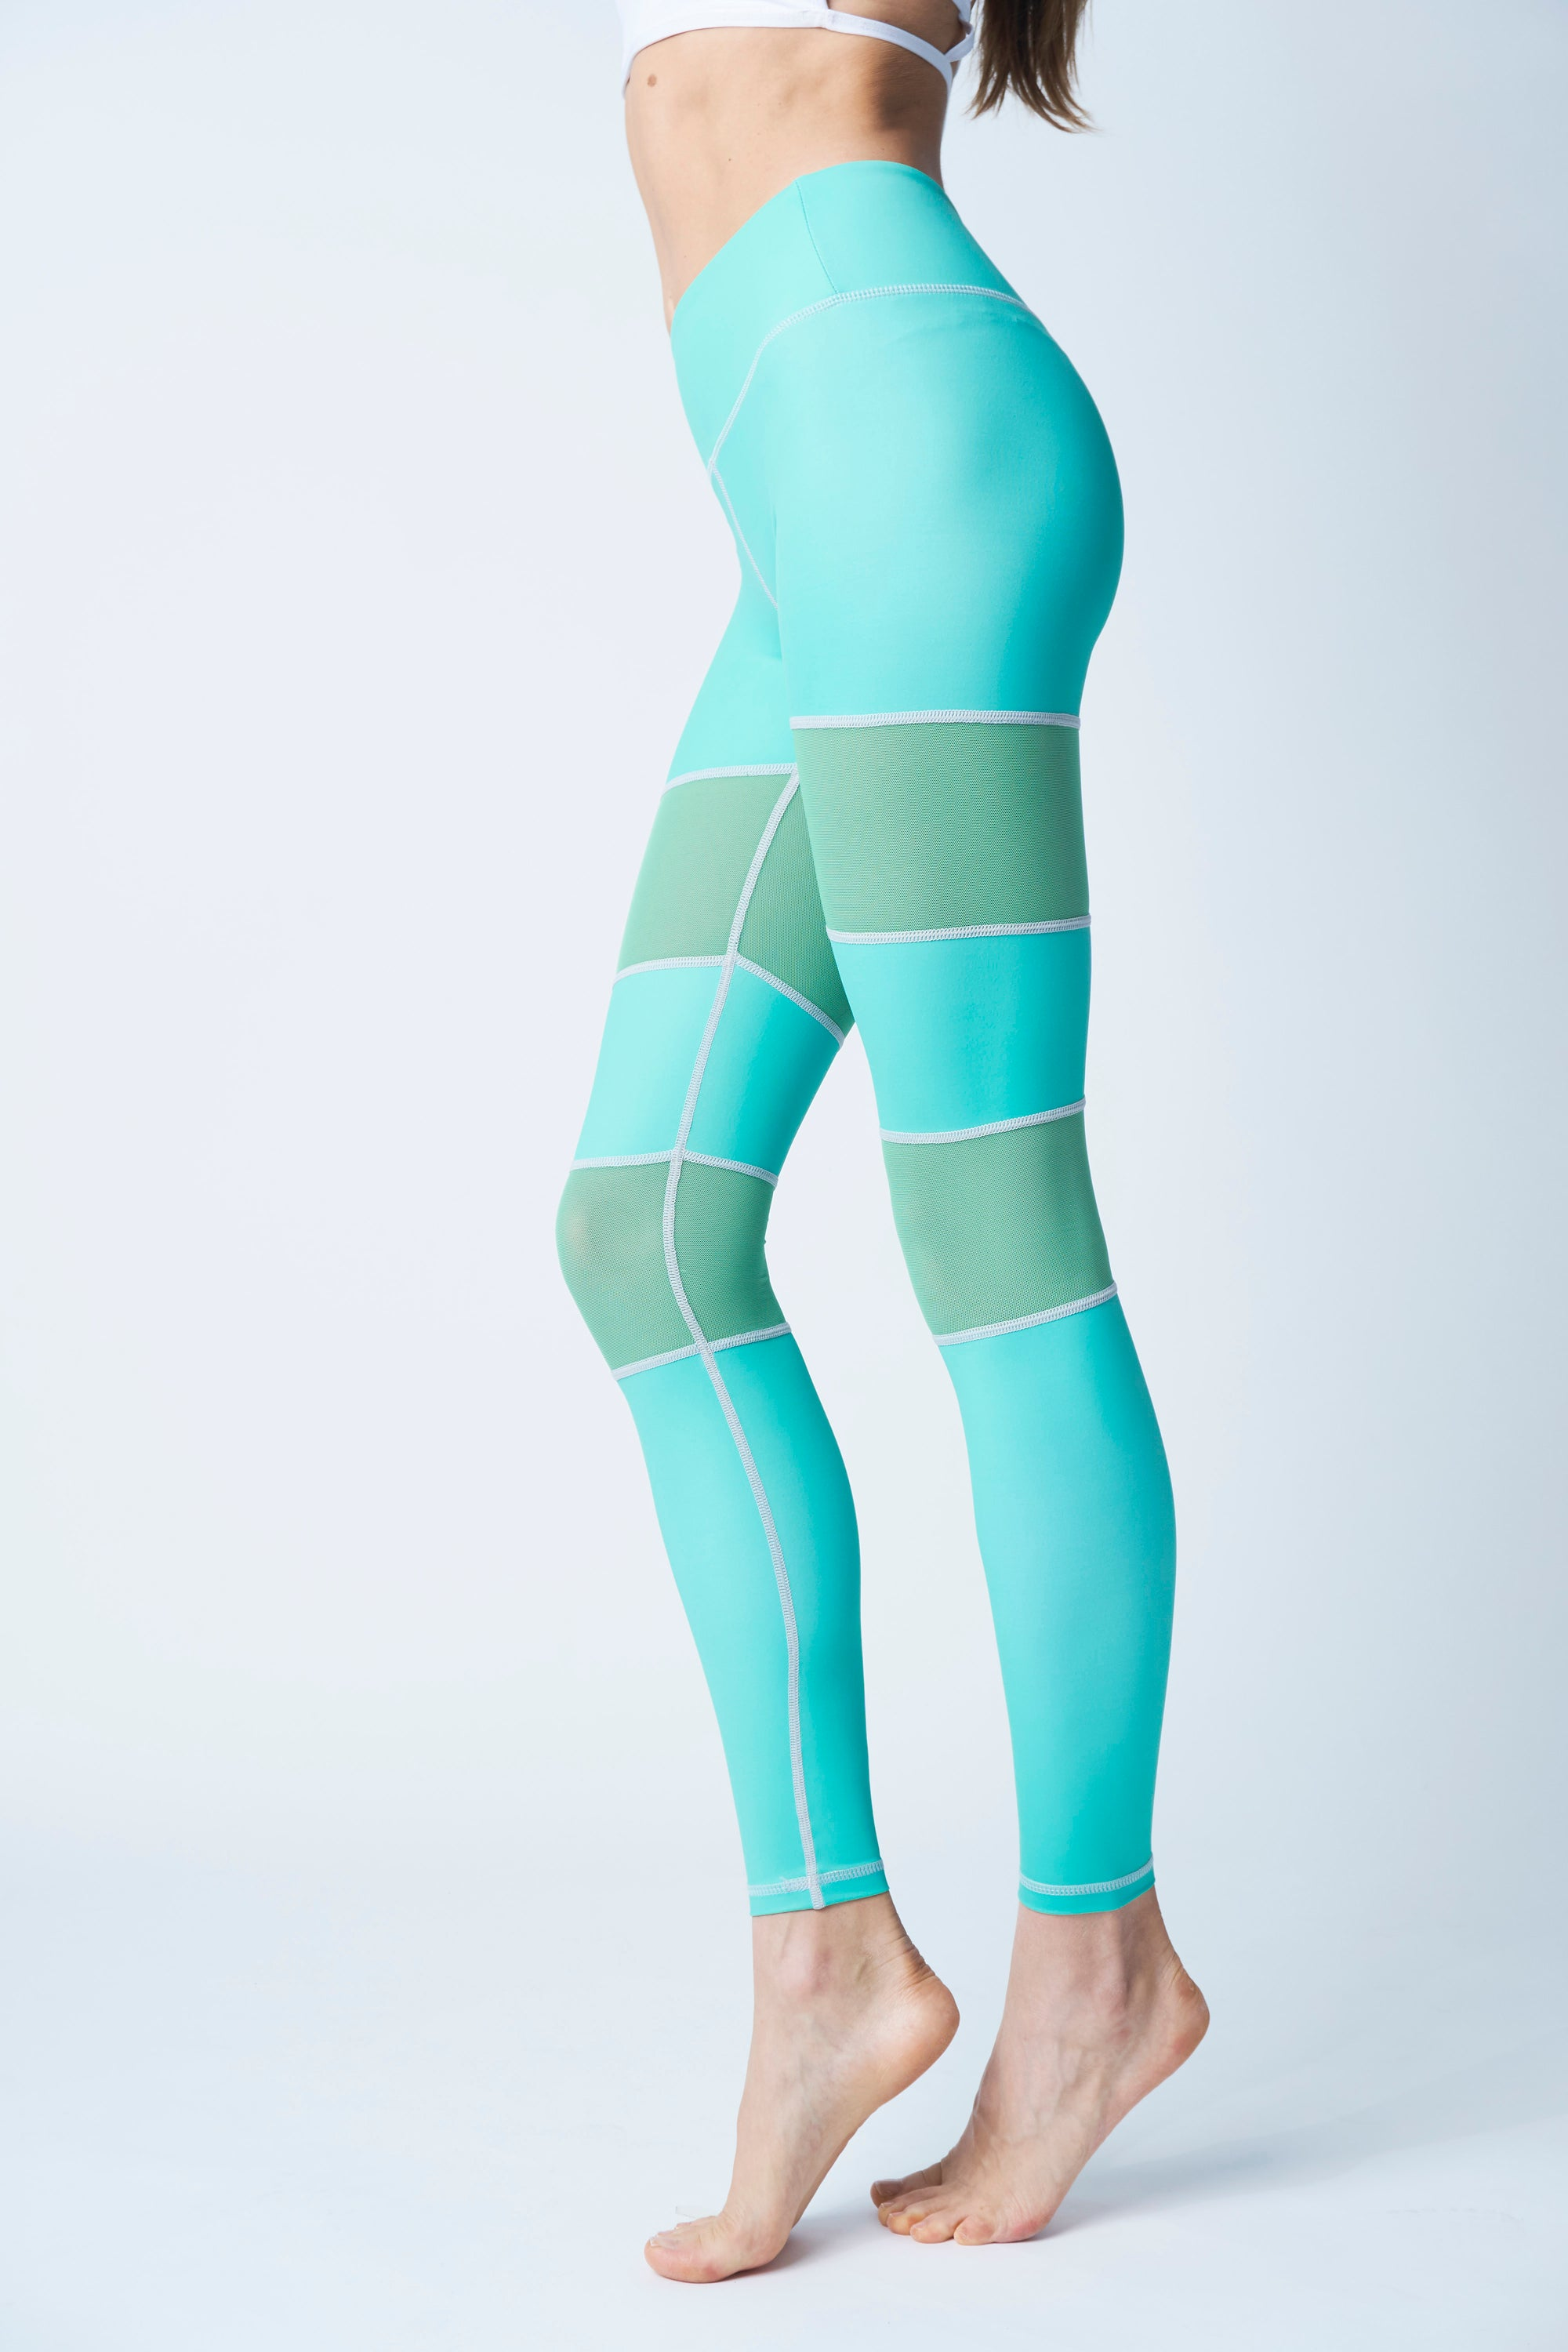 a0cf0d40928ad High-Waisted Mint Green Mesh Insert Peek a Boo Skin Leggings for Yoga  Pilates Gym Fitness Workouts